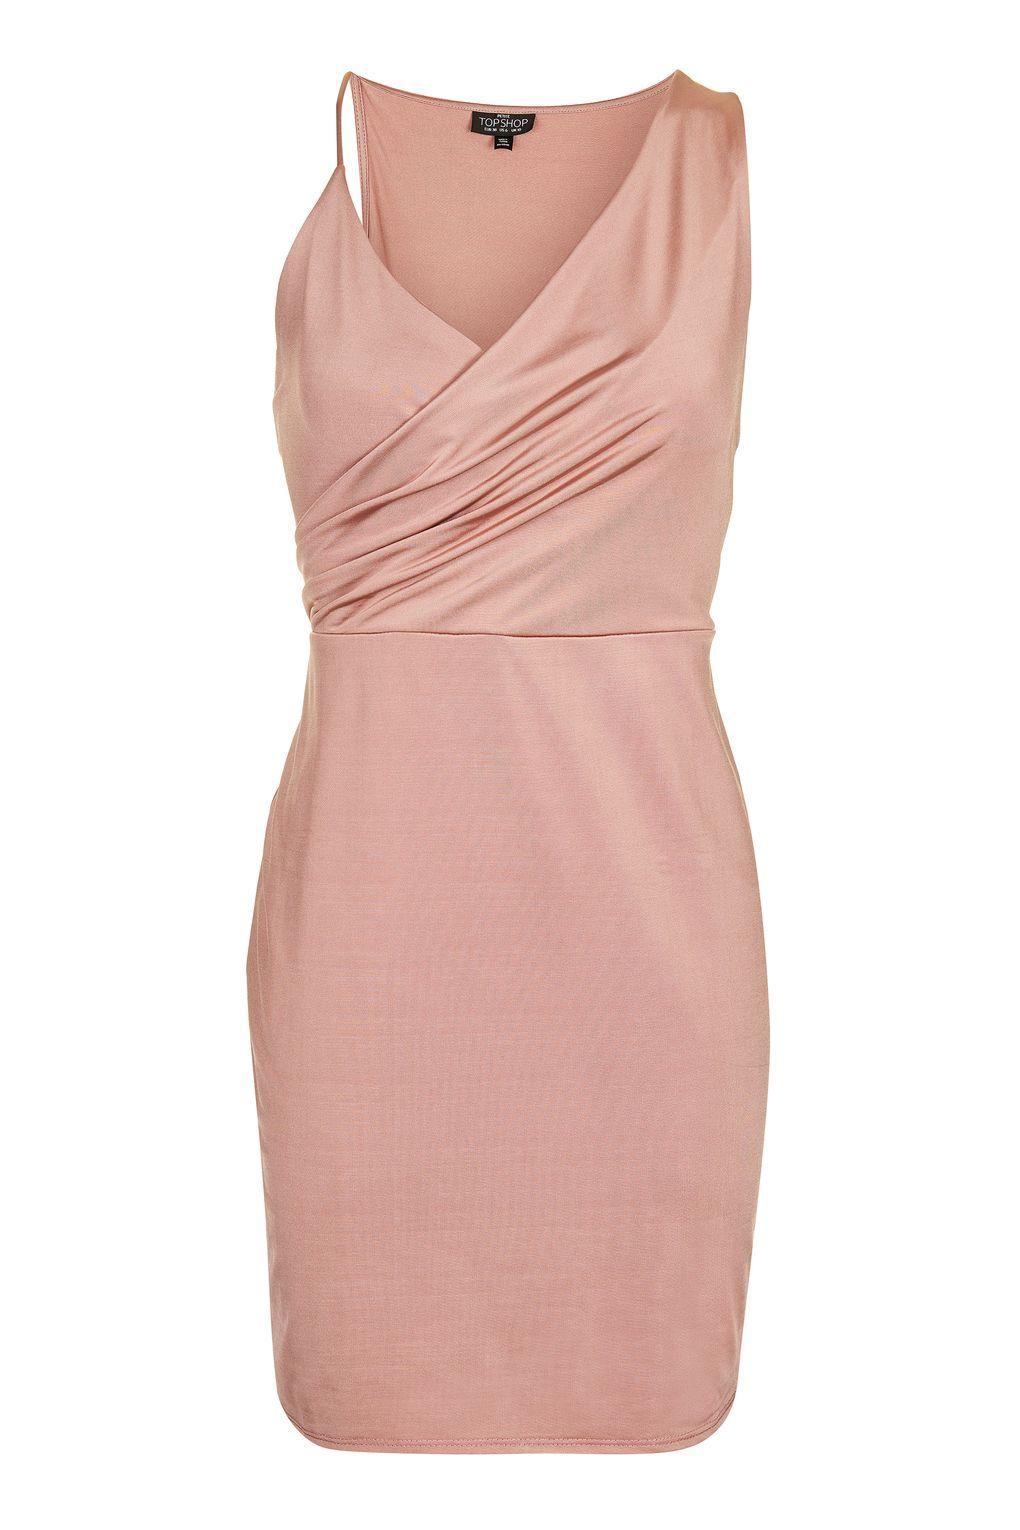 PETITE Wrap Bodycon Dress - New In Petite, Tall & Maternity - New In ...